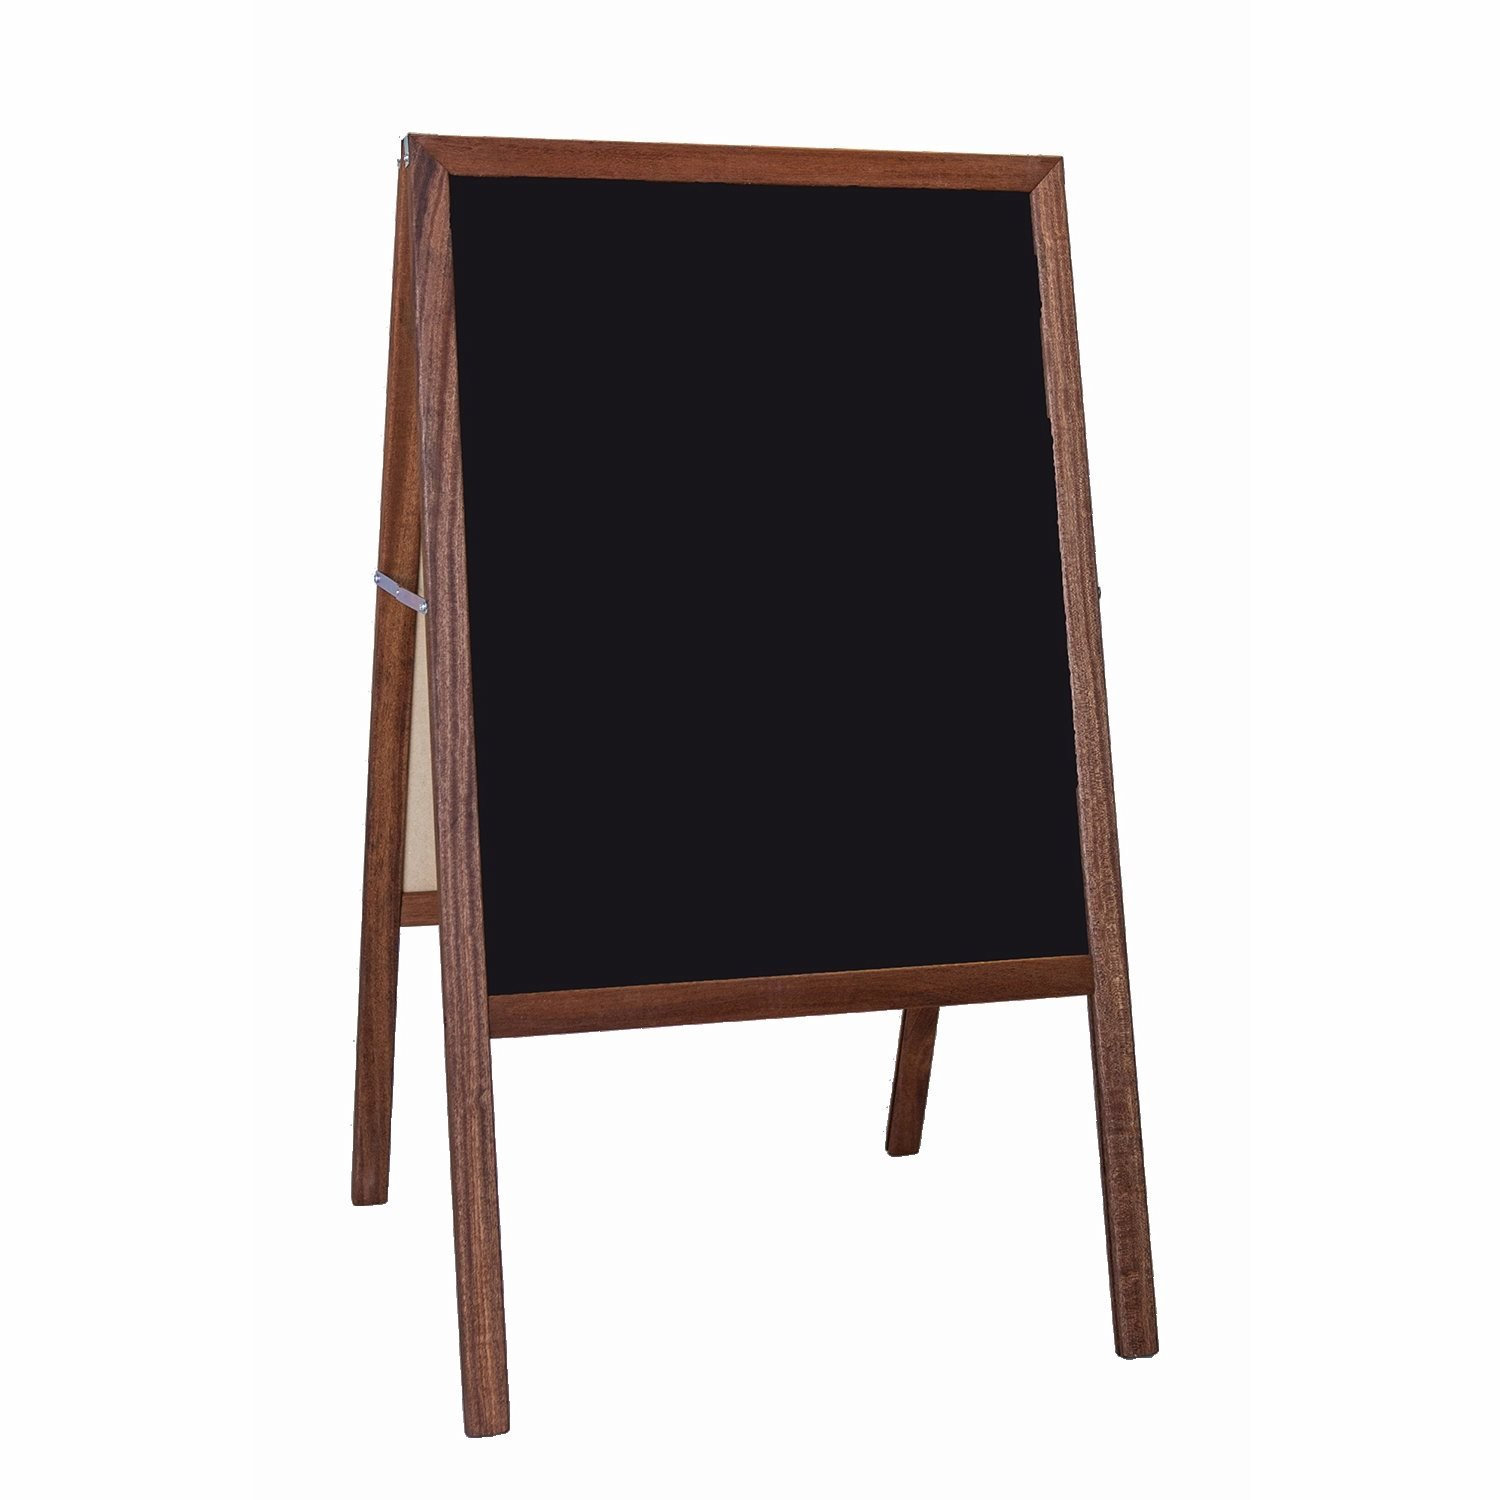 Two-sided Folding Marquee Natural Wood Easel - Black Dry Erase Boards on Both Sides! (H42 x W24ins)